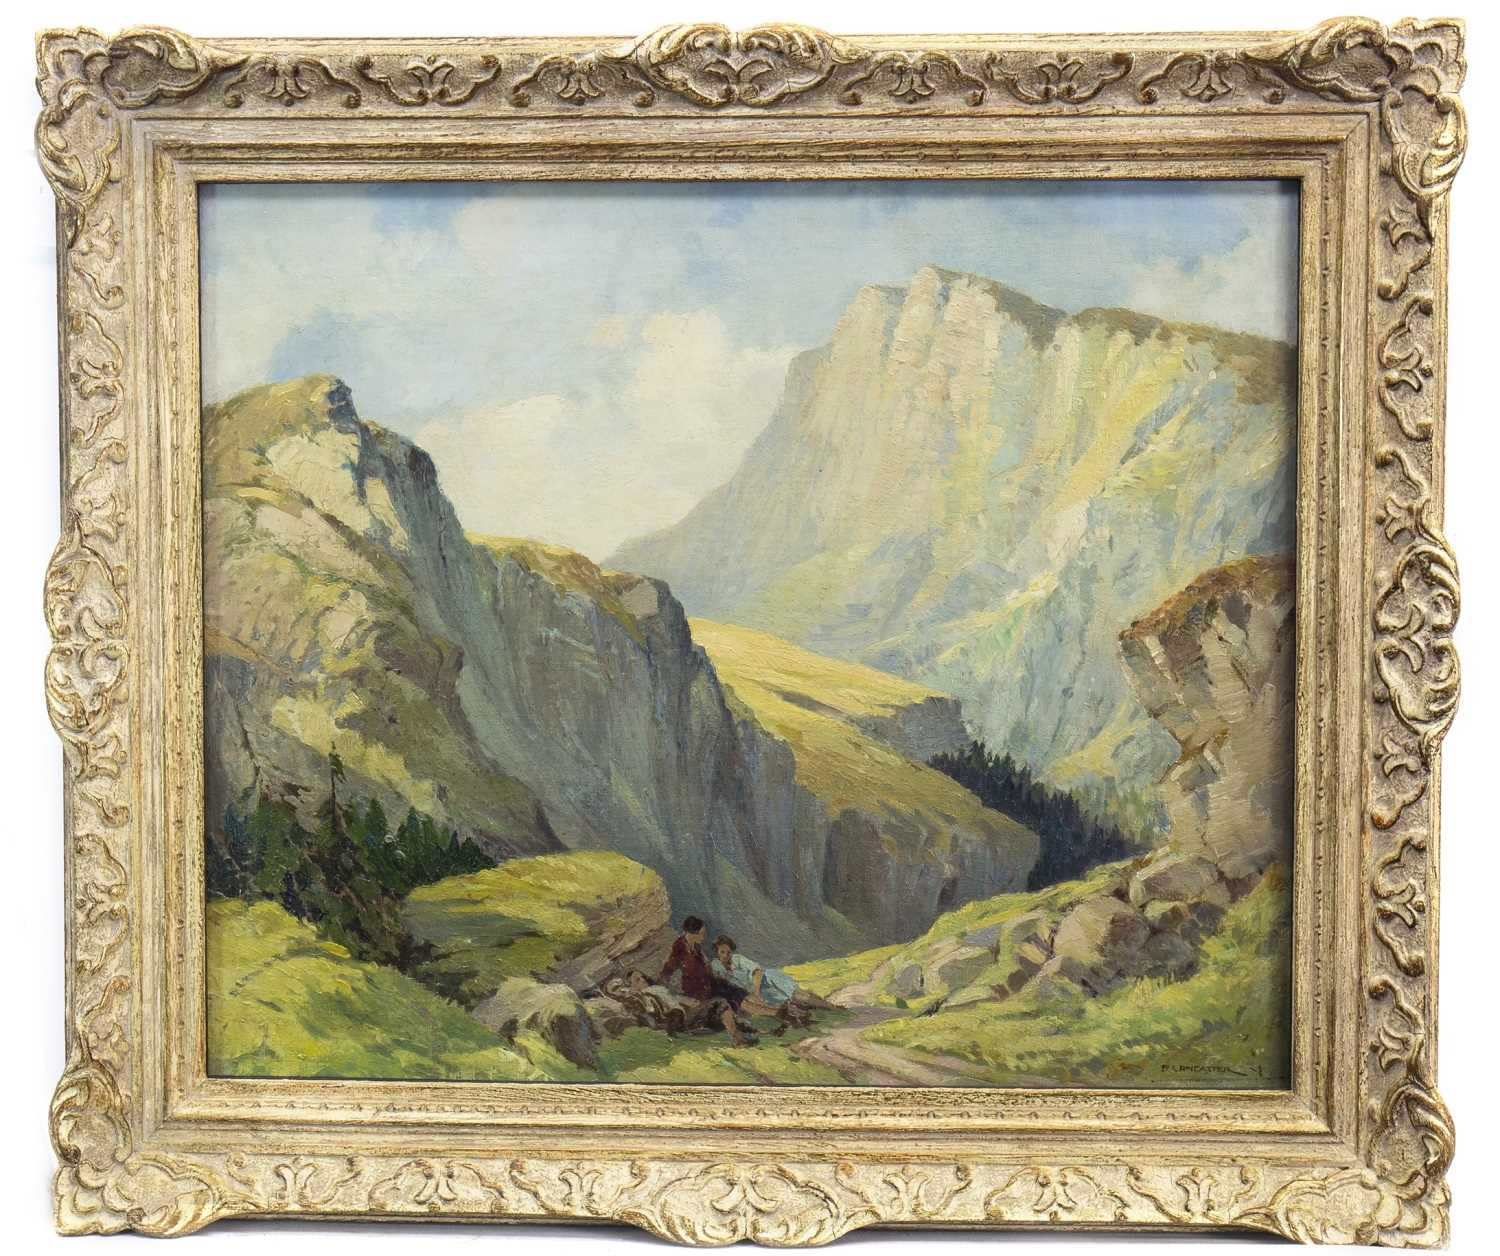 Lot 410-SWISS MOUNTAIN PASS WITH FIGURES RESTING, AN OIL BY PERCY LANCASTER